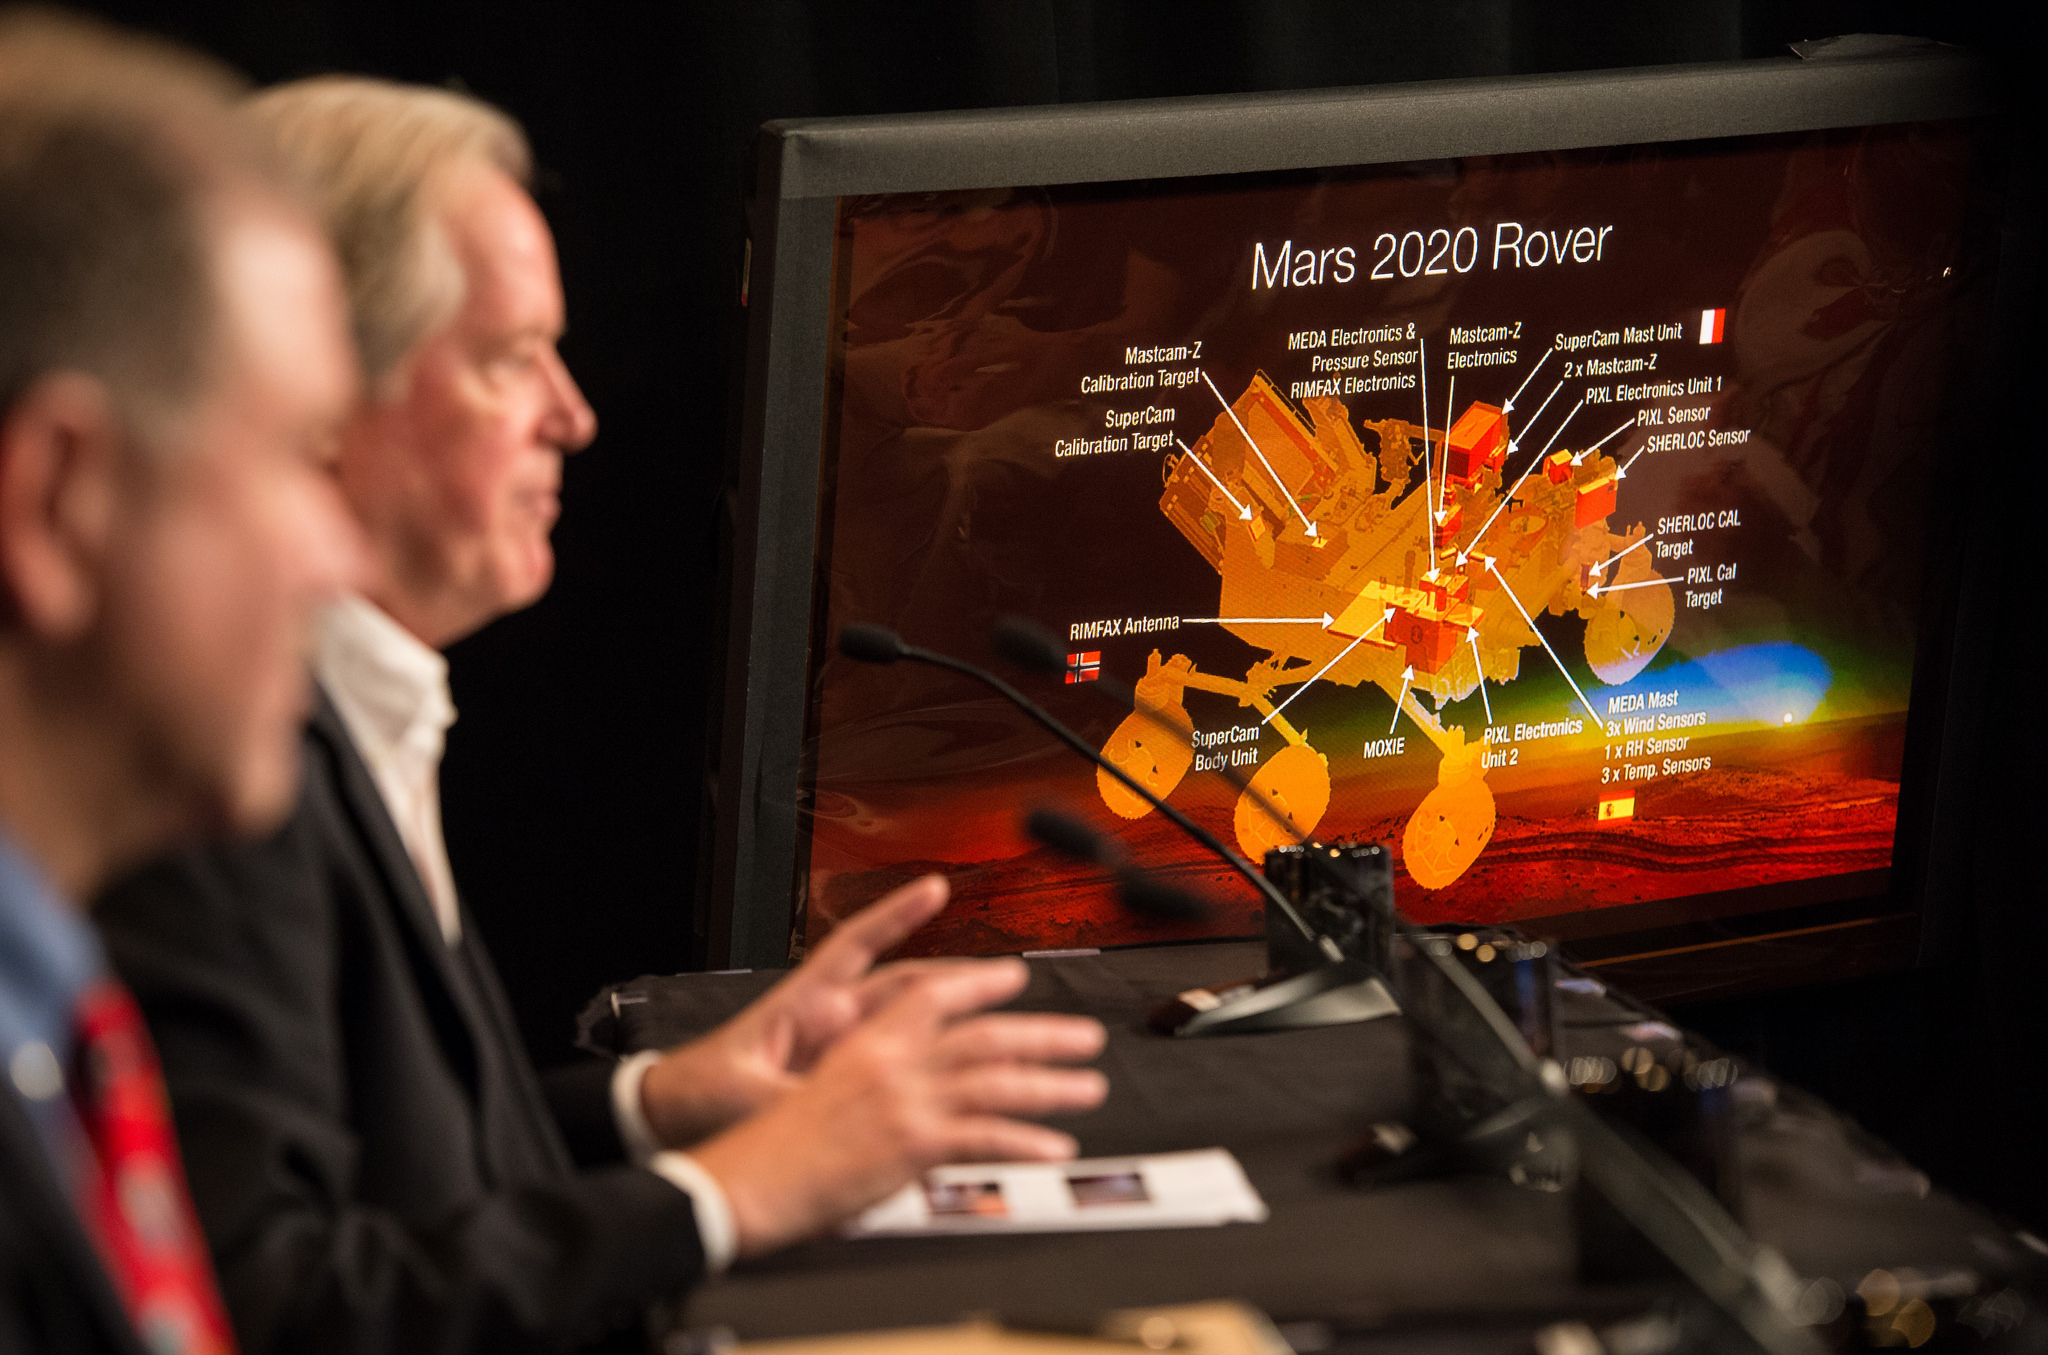 NASA's Next Mars Rover to Collect Martian Samples, Carry Lasers